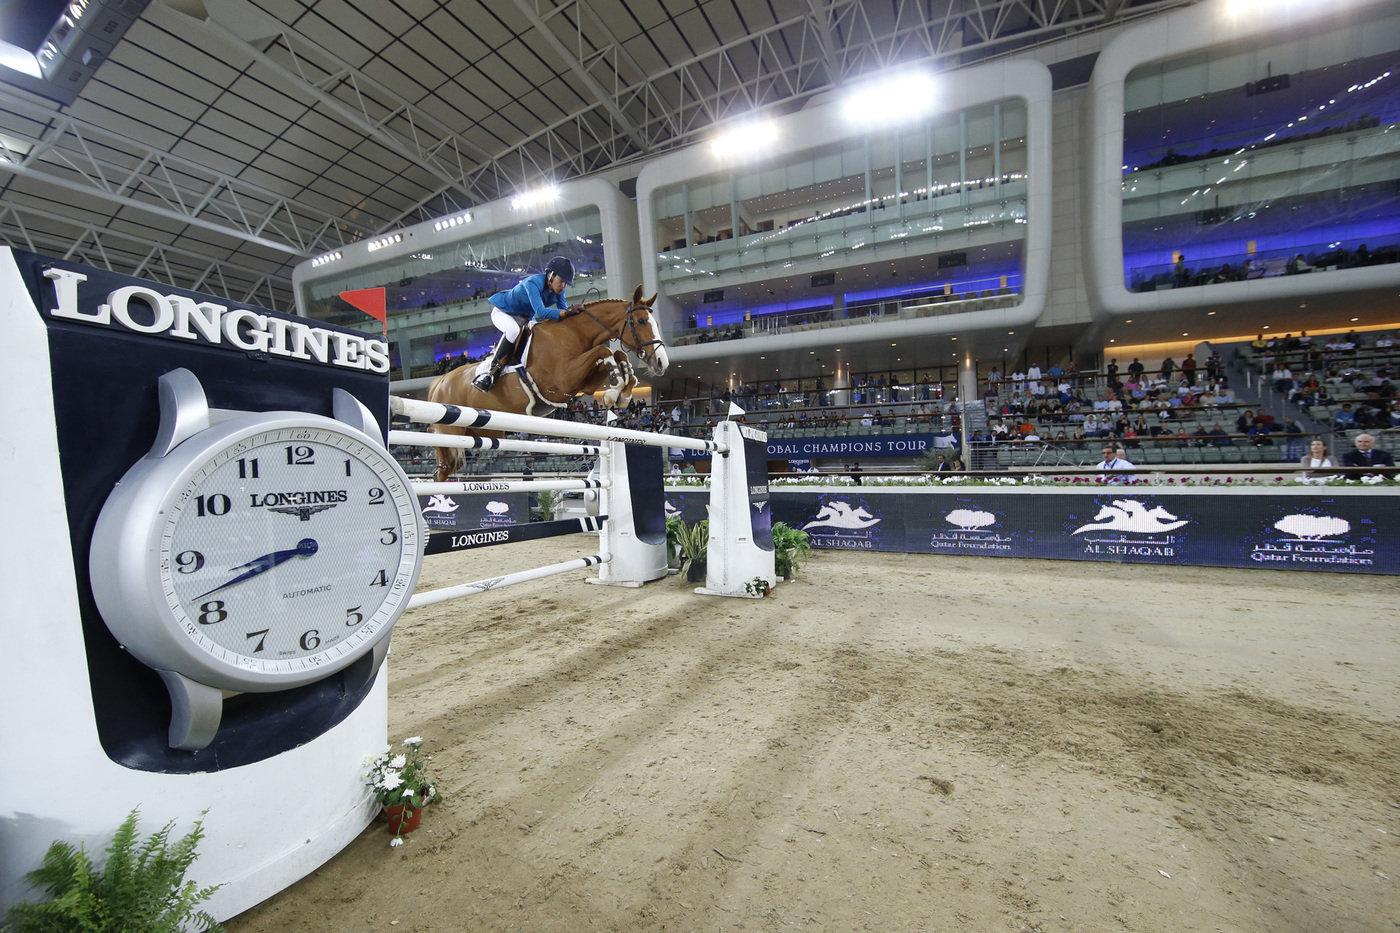 Longines Show Jumping Event: Doha hosts the finale of the 2015 Longines Global Champions Tour 2